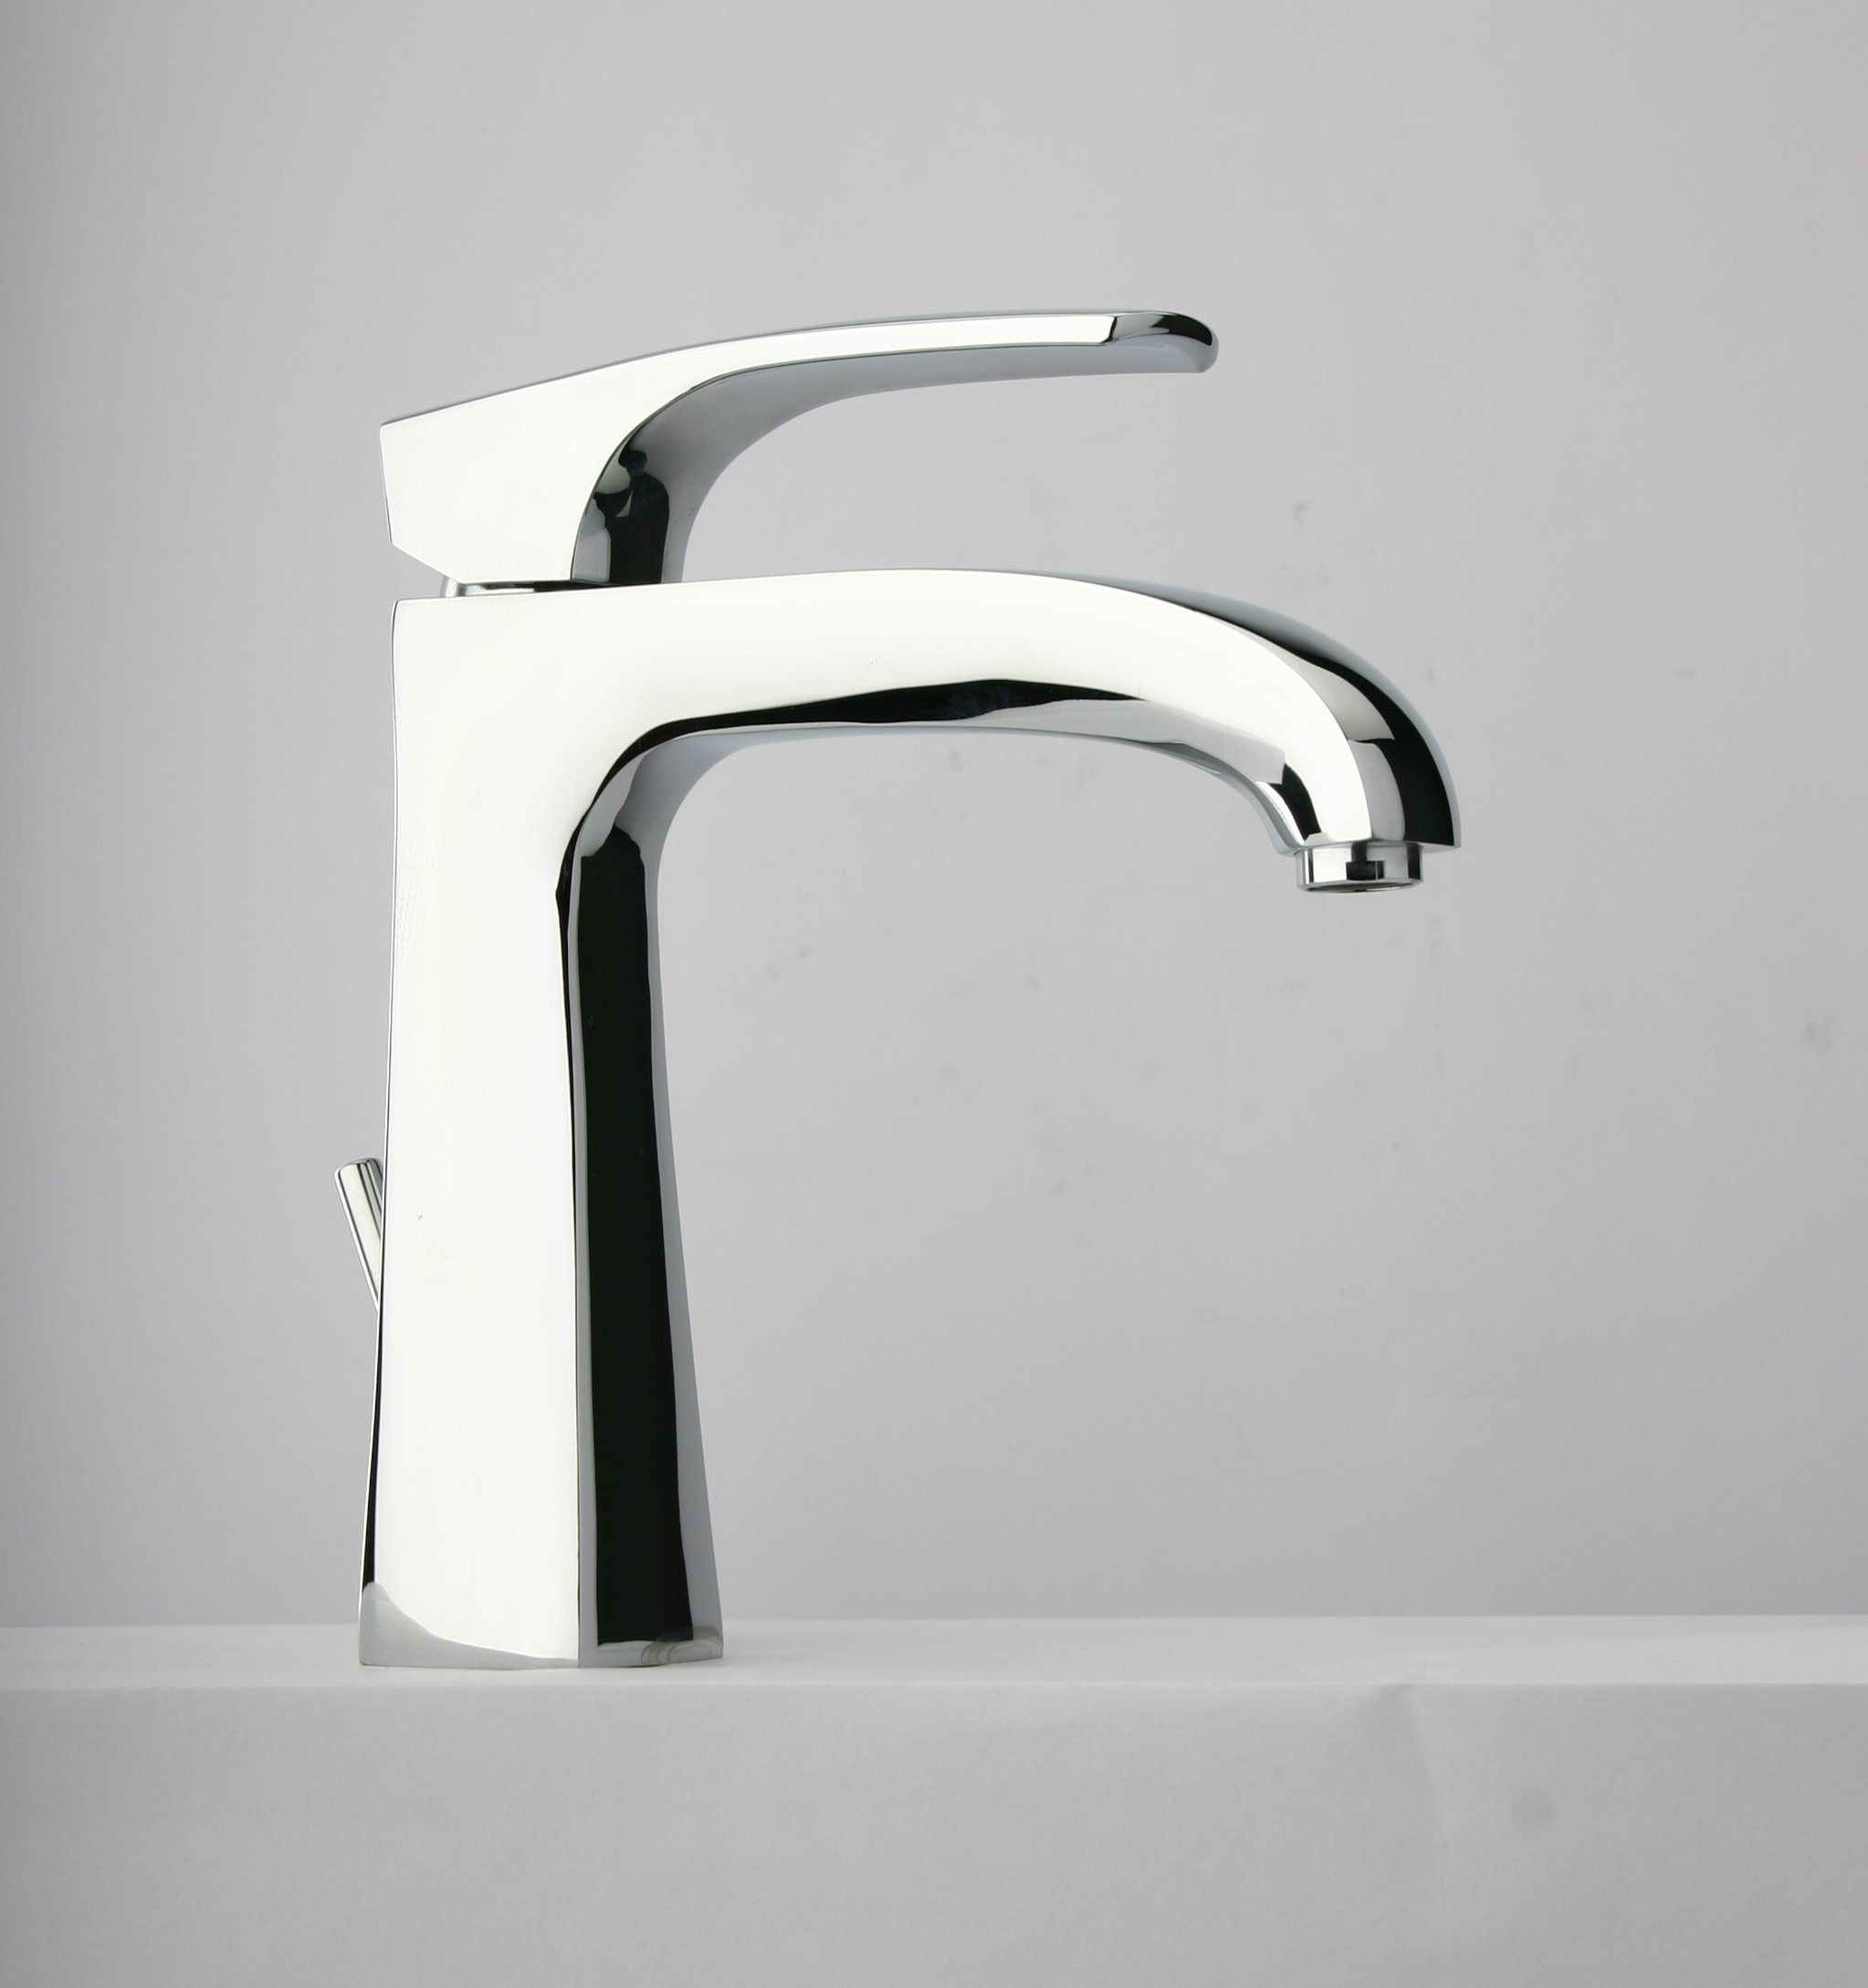 Ideas, la toscana bathroom faucets la toscana bathroom faucets latoscana paini bathroom faucets wave plumbing 2046 x 2178  .